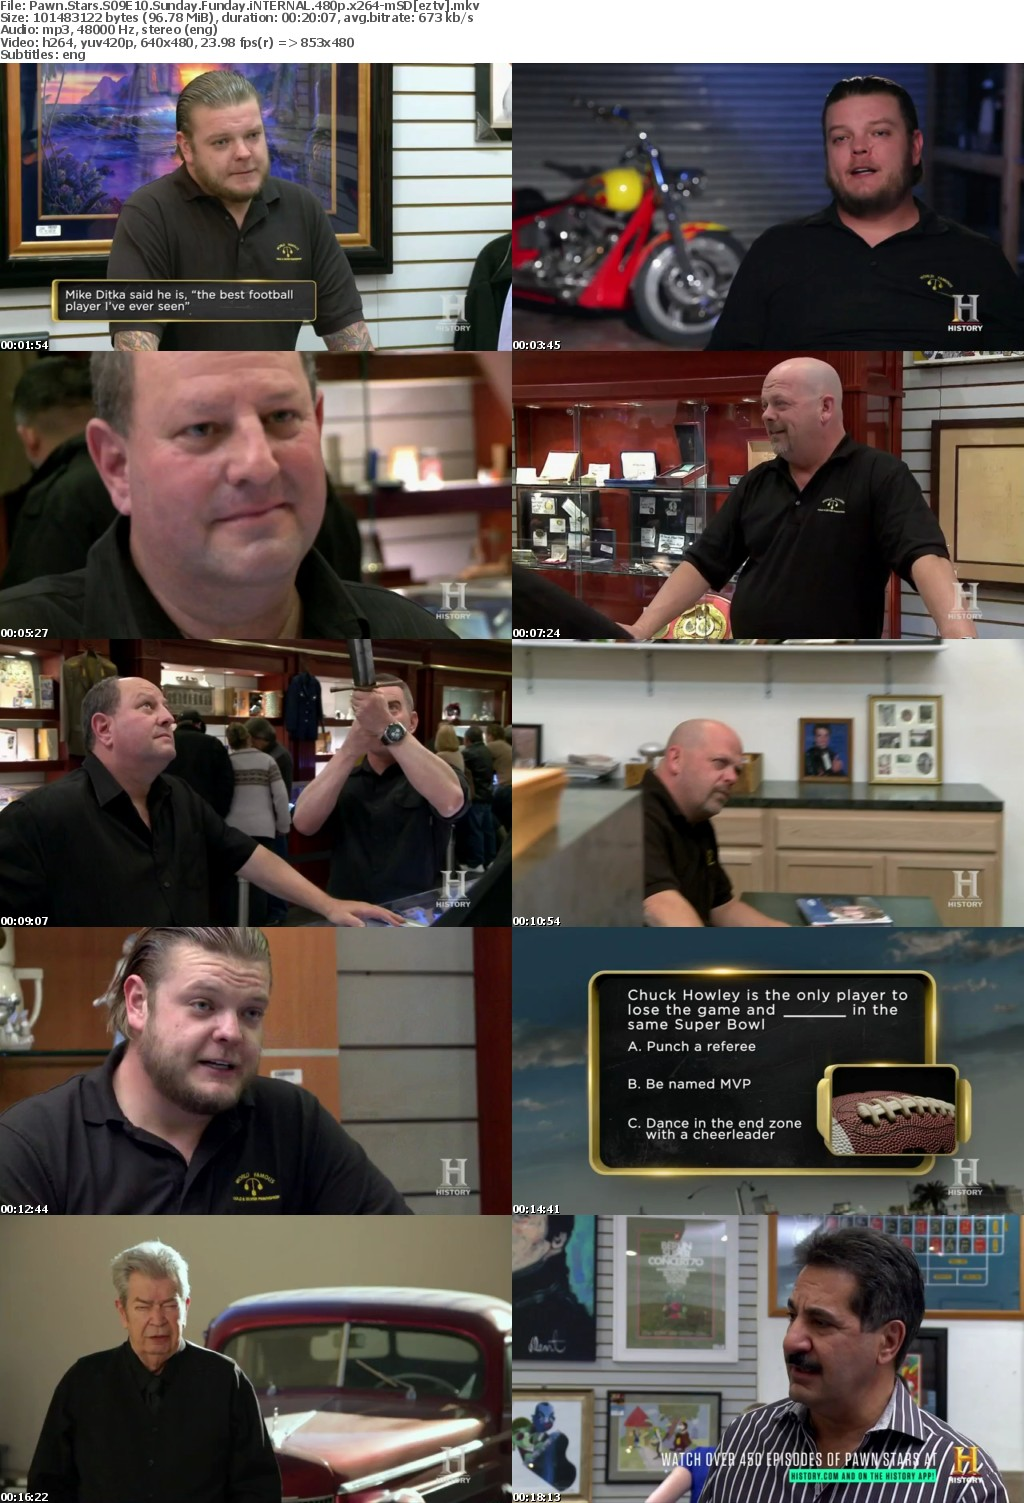 Pawn Stars S09E10 Sunday Funday iNTERNAL 480p x264-mSD